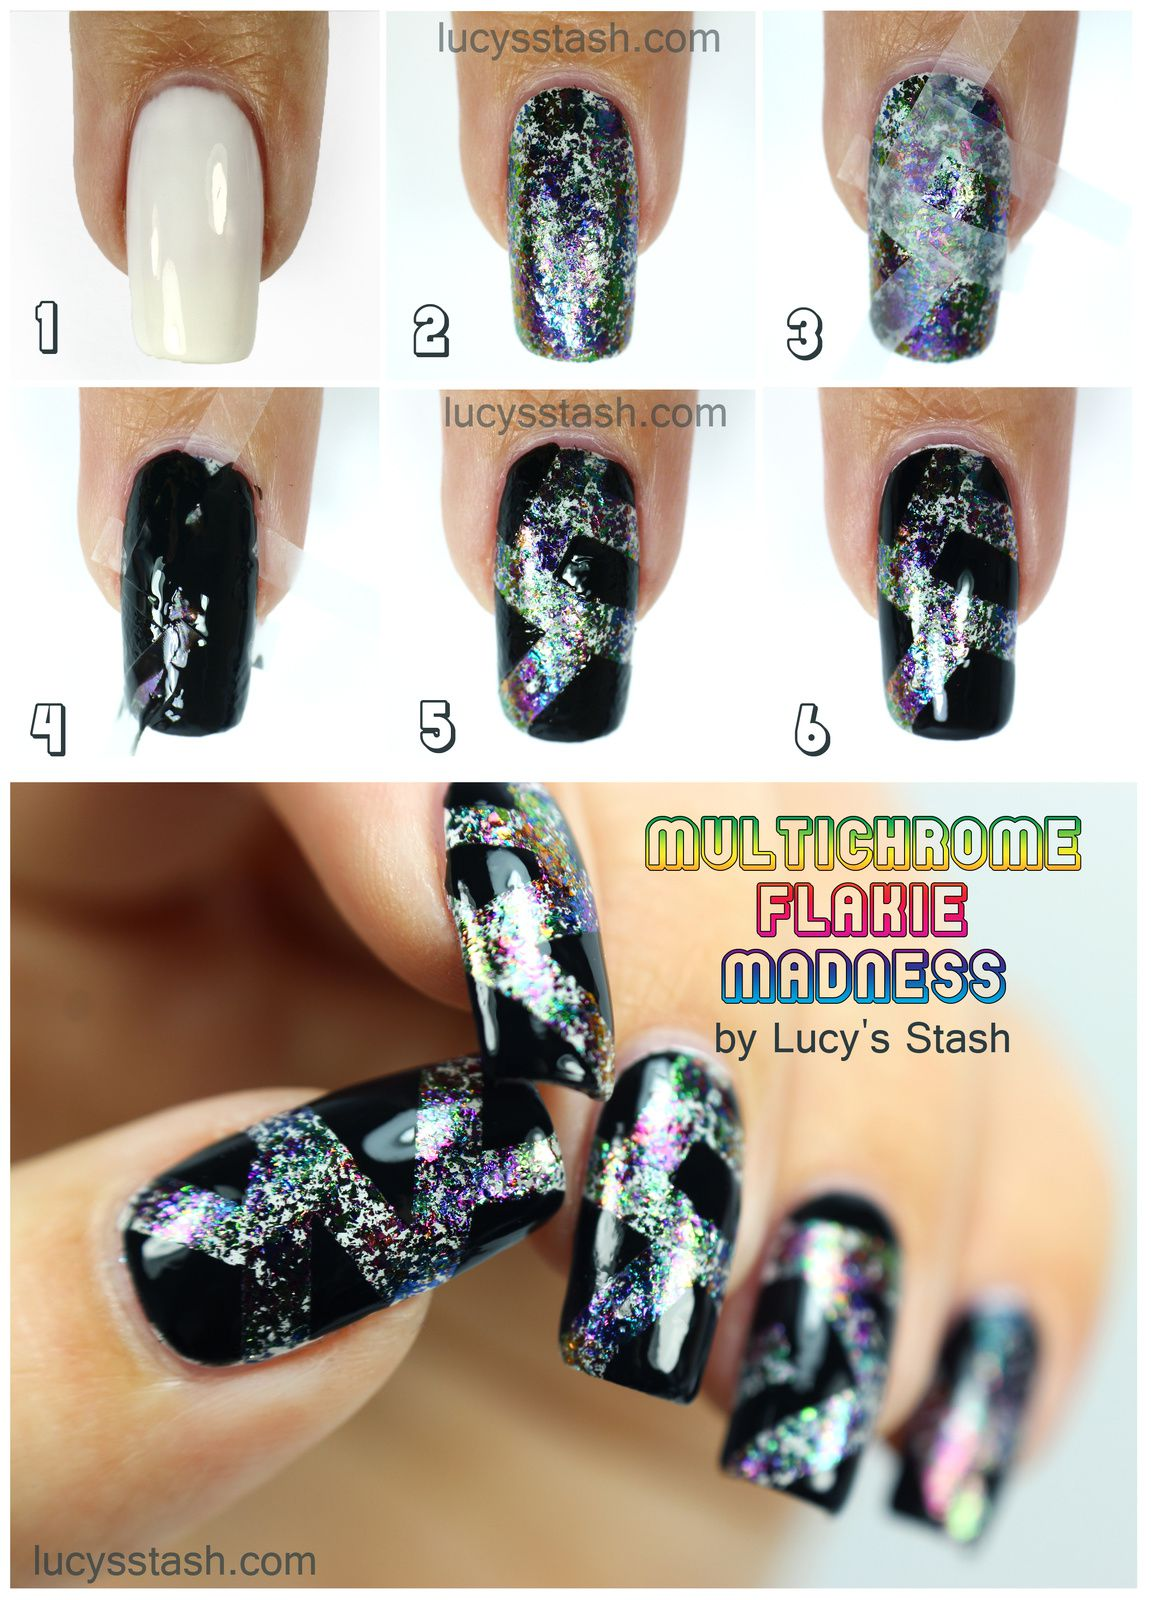 Multichrome Flakie Madness Nails with TUTORIAL